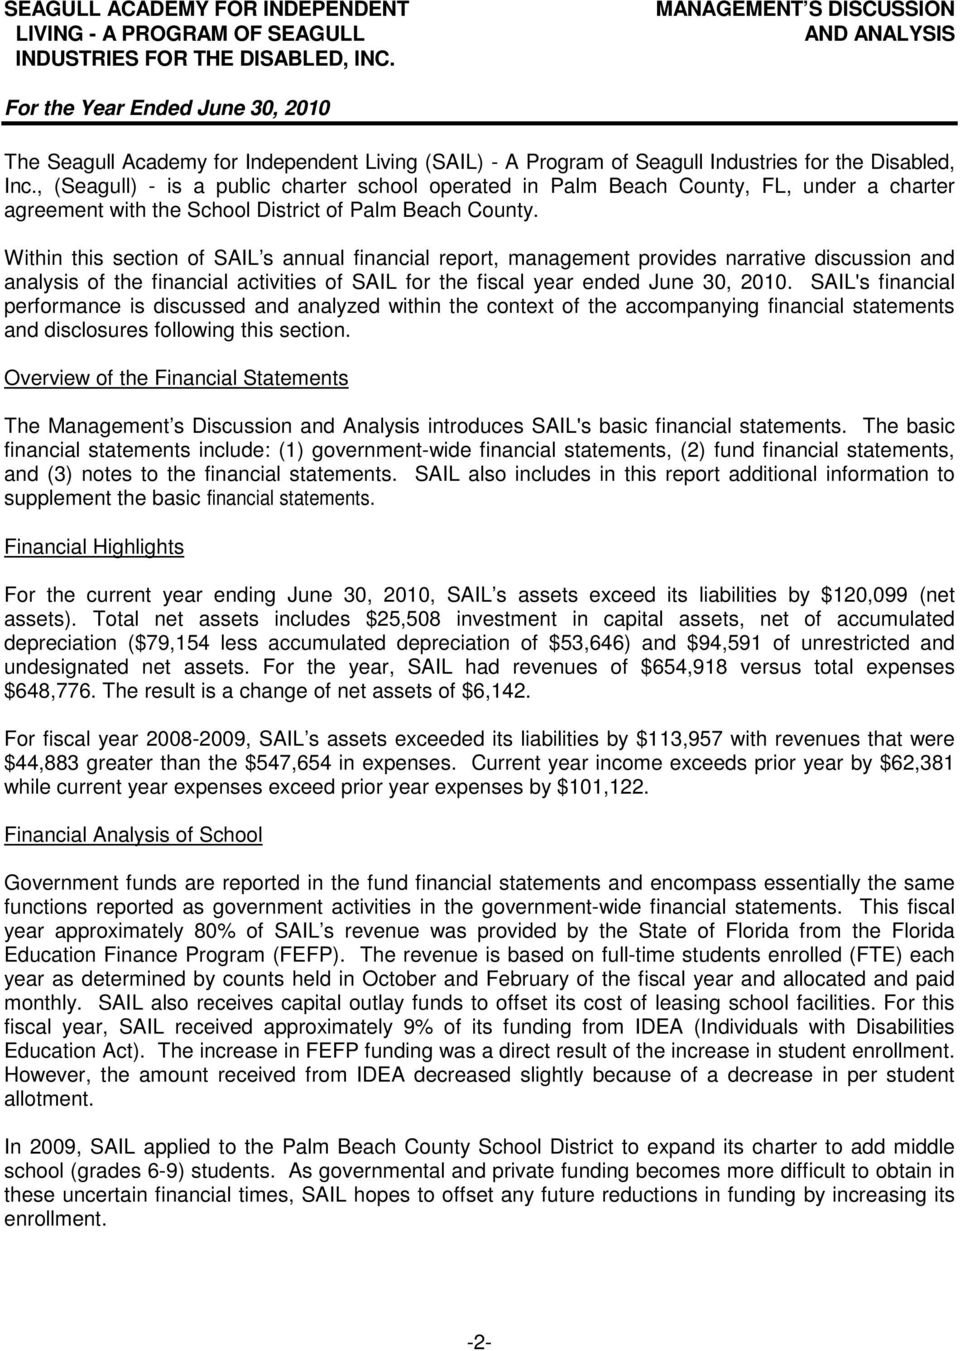 Within this section of SAIL s annual financial report, management provides narrative discussion and analysis of the financial activities of SAIL for the fiscal year ended June 30, 2010.